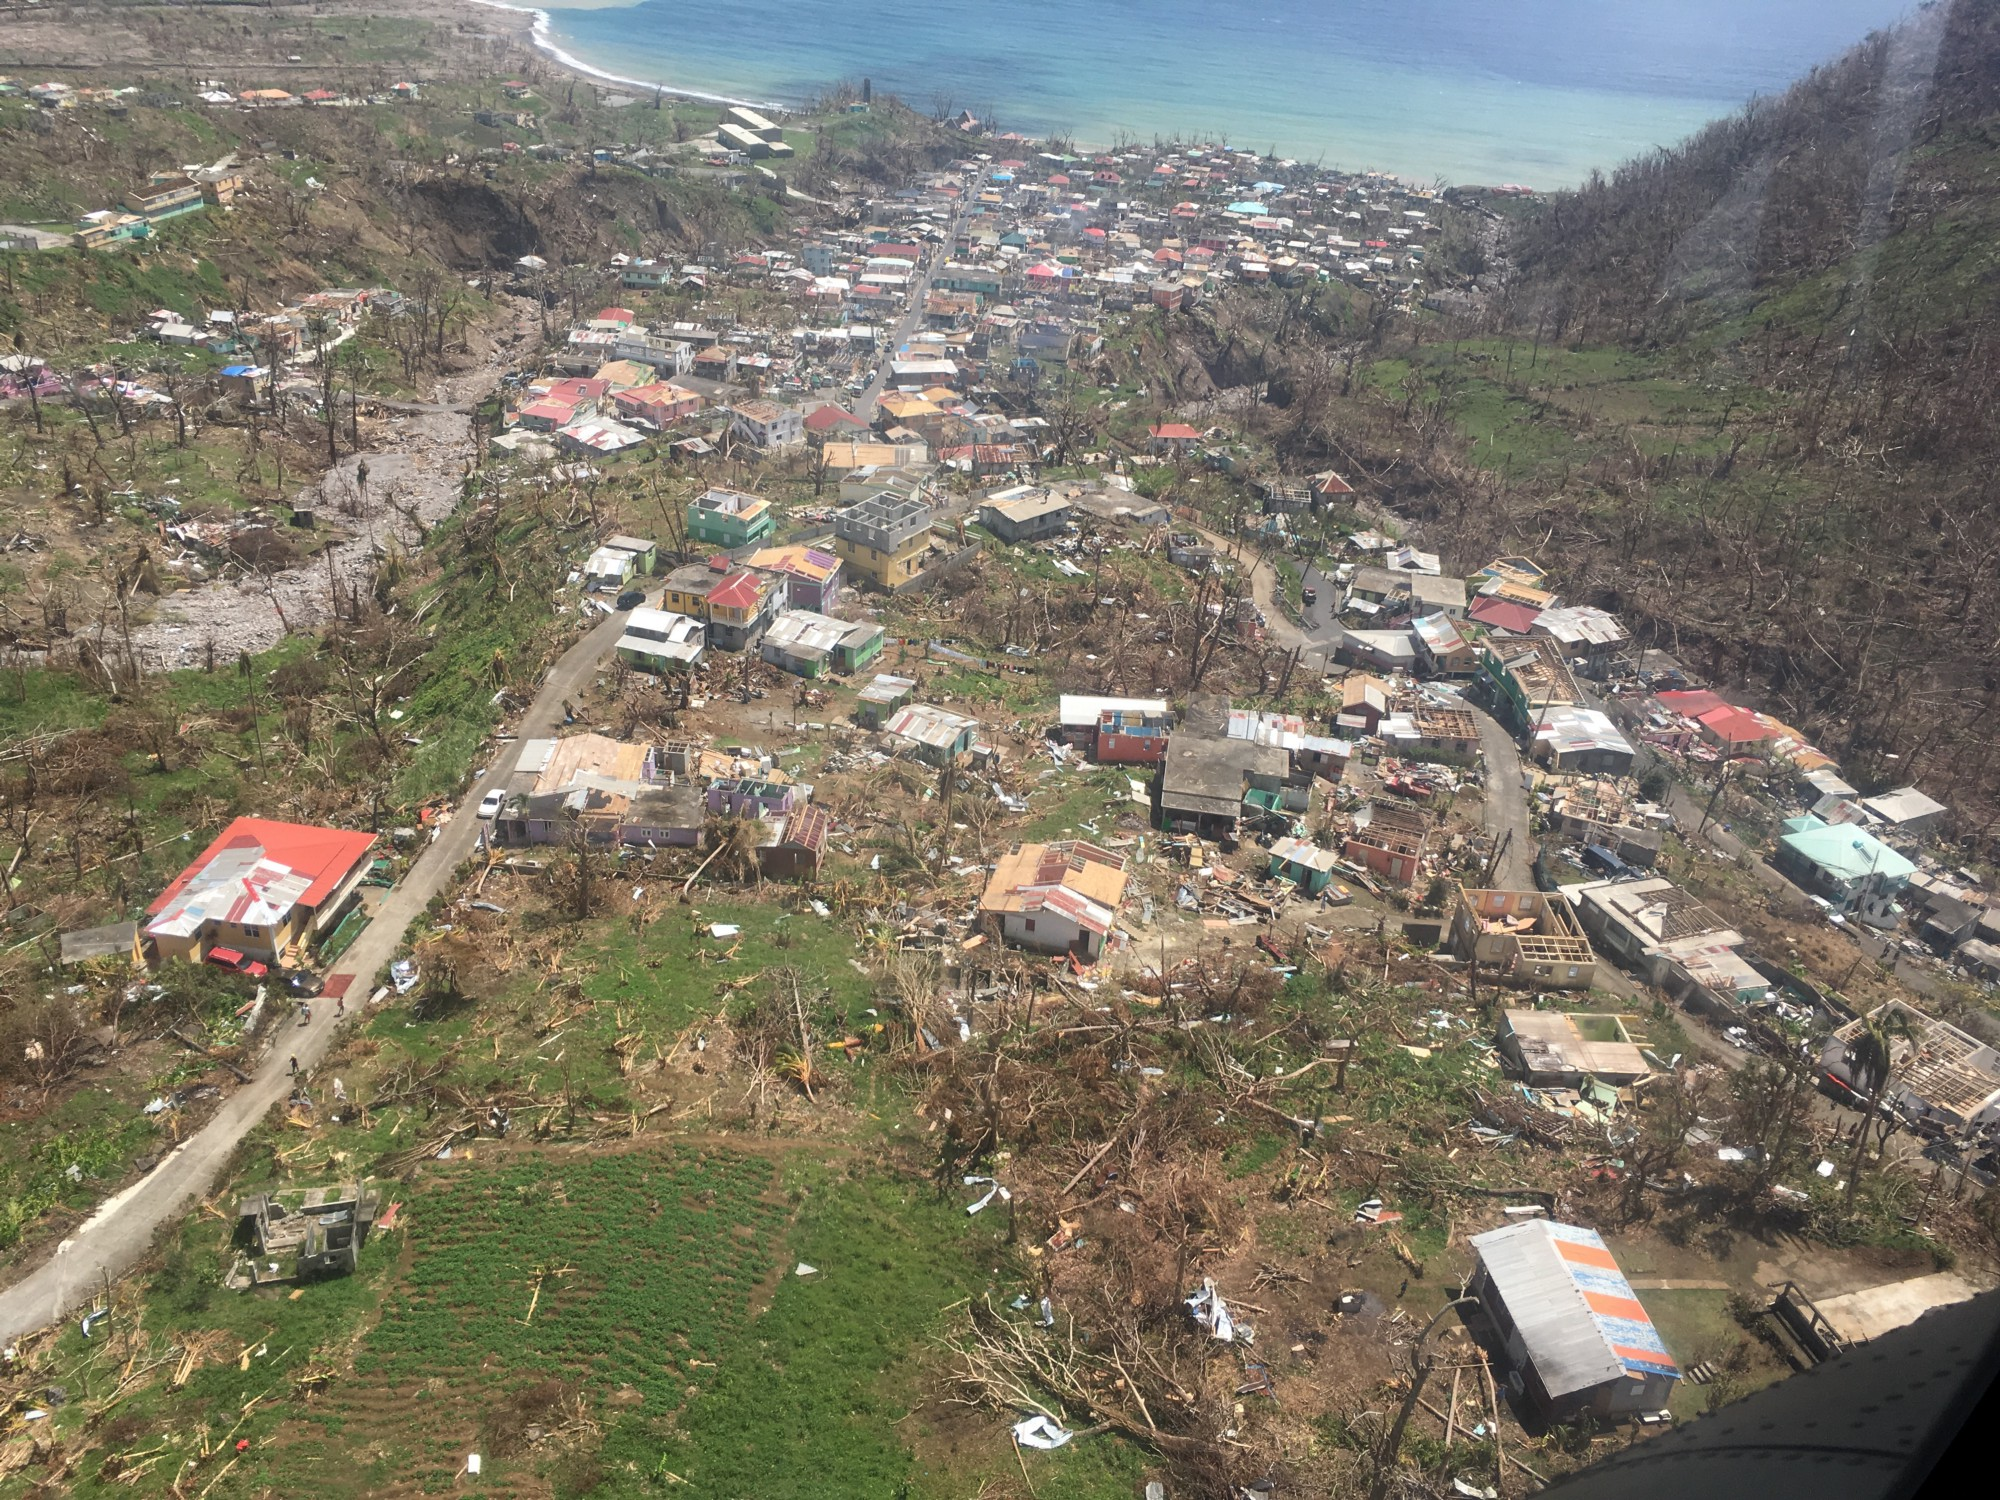 Hurricane Maria, a Category 5 storm, made landfall on the island of Dominica on September 18, causing widespread devastation. Photo credit: Caroline Ogonowski, USAID/OFDA